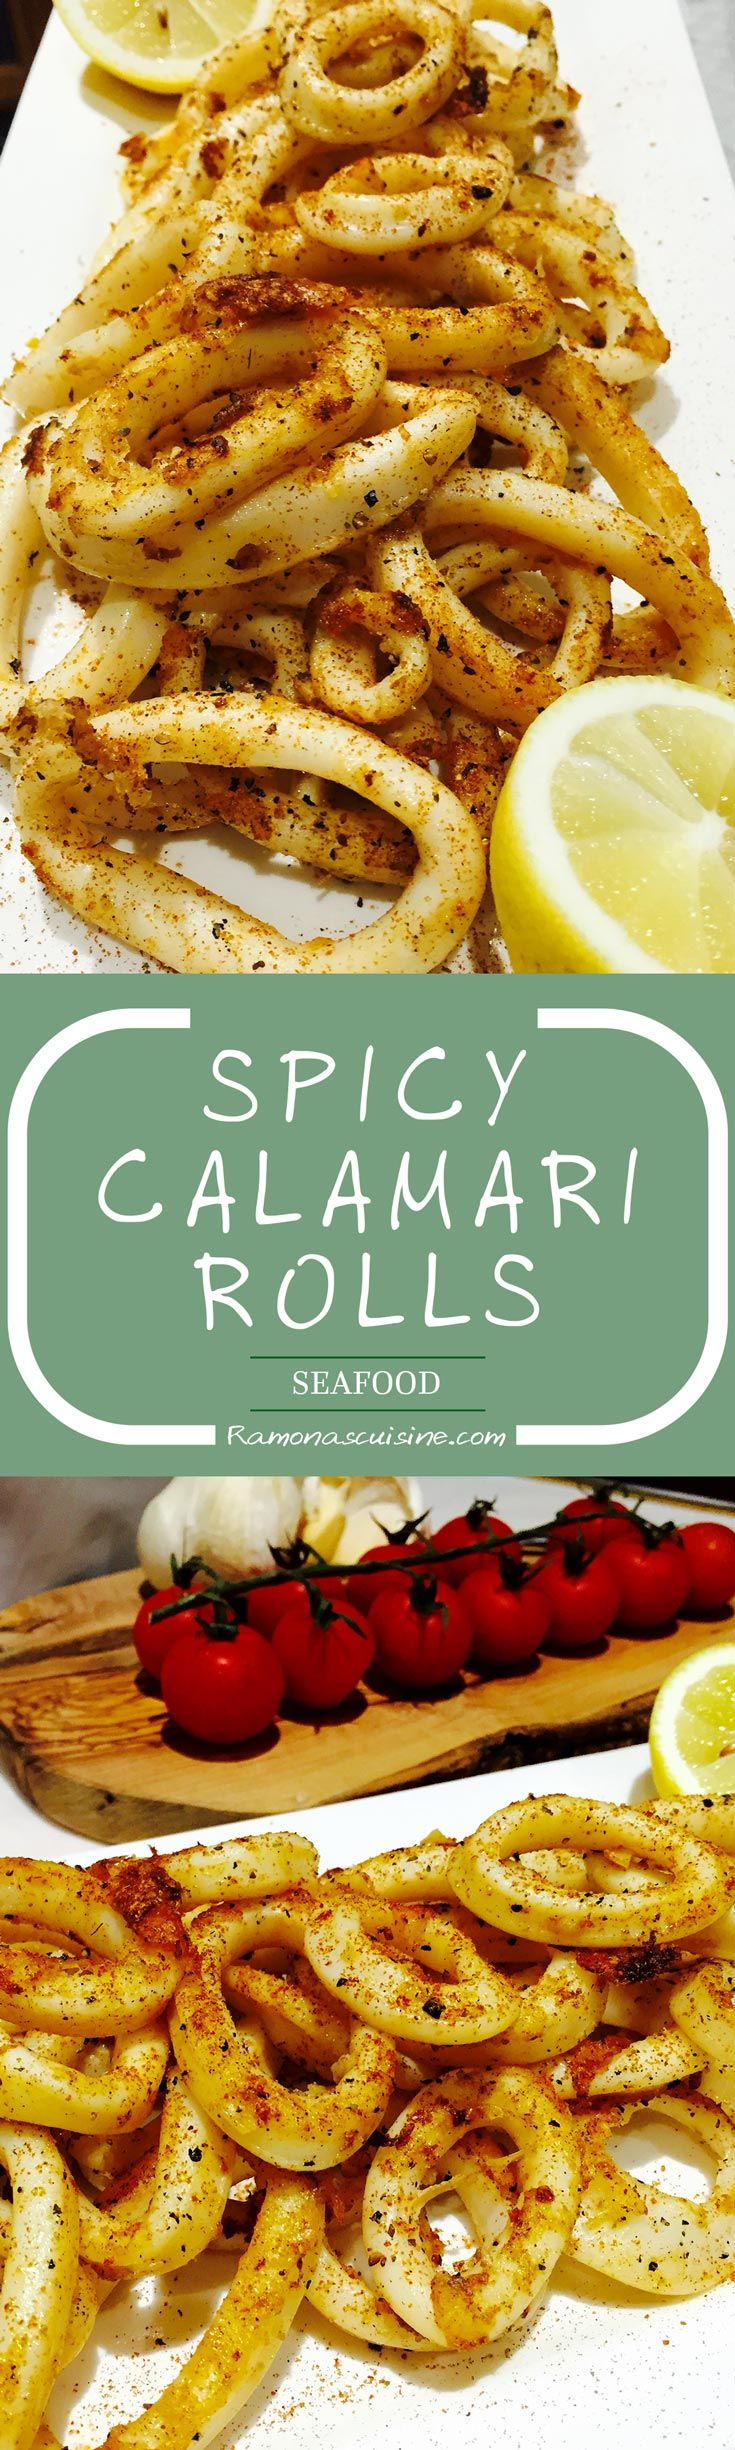 This calamari rolls appetizer is an easy to prepare, healthy starter dish, rich in vitamins, minerals and omega 3 oils.